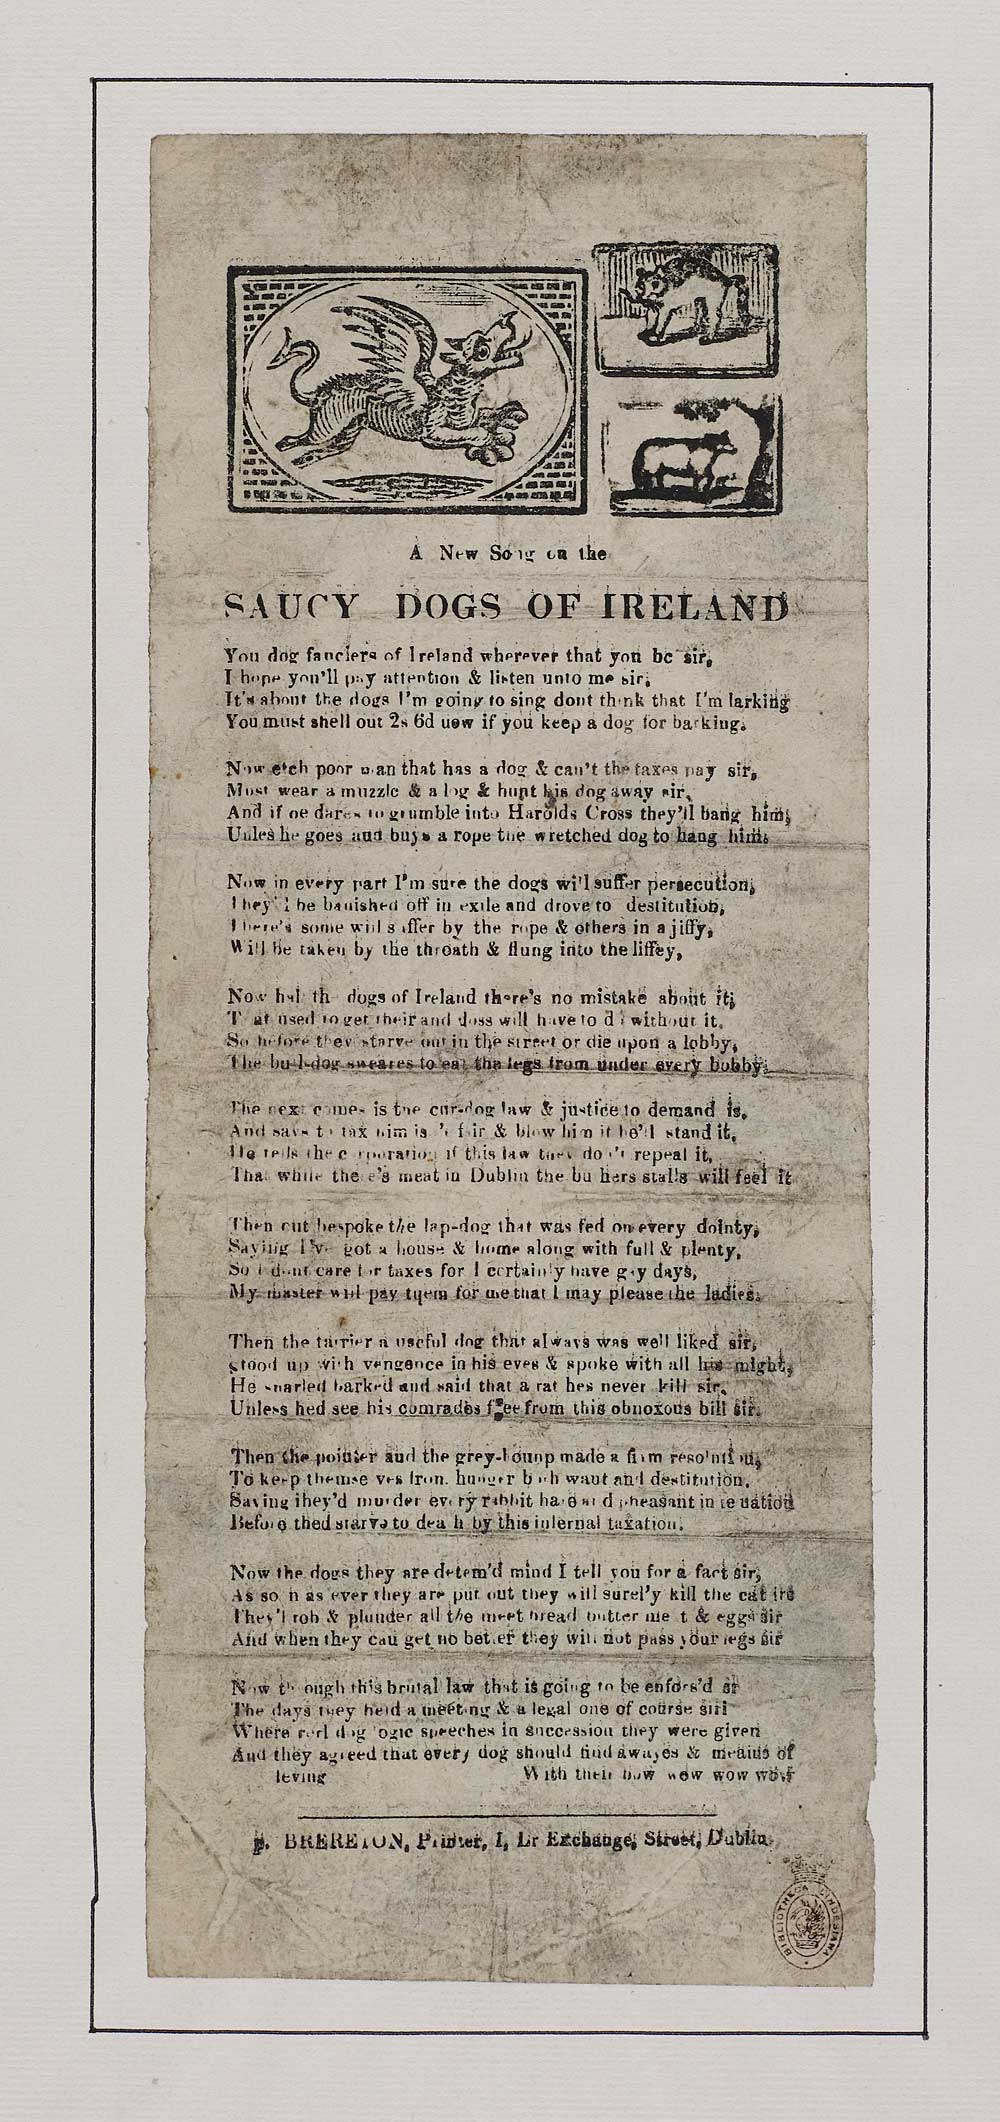 New song on the saucy dogs of Ireland - Ireland - English